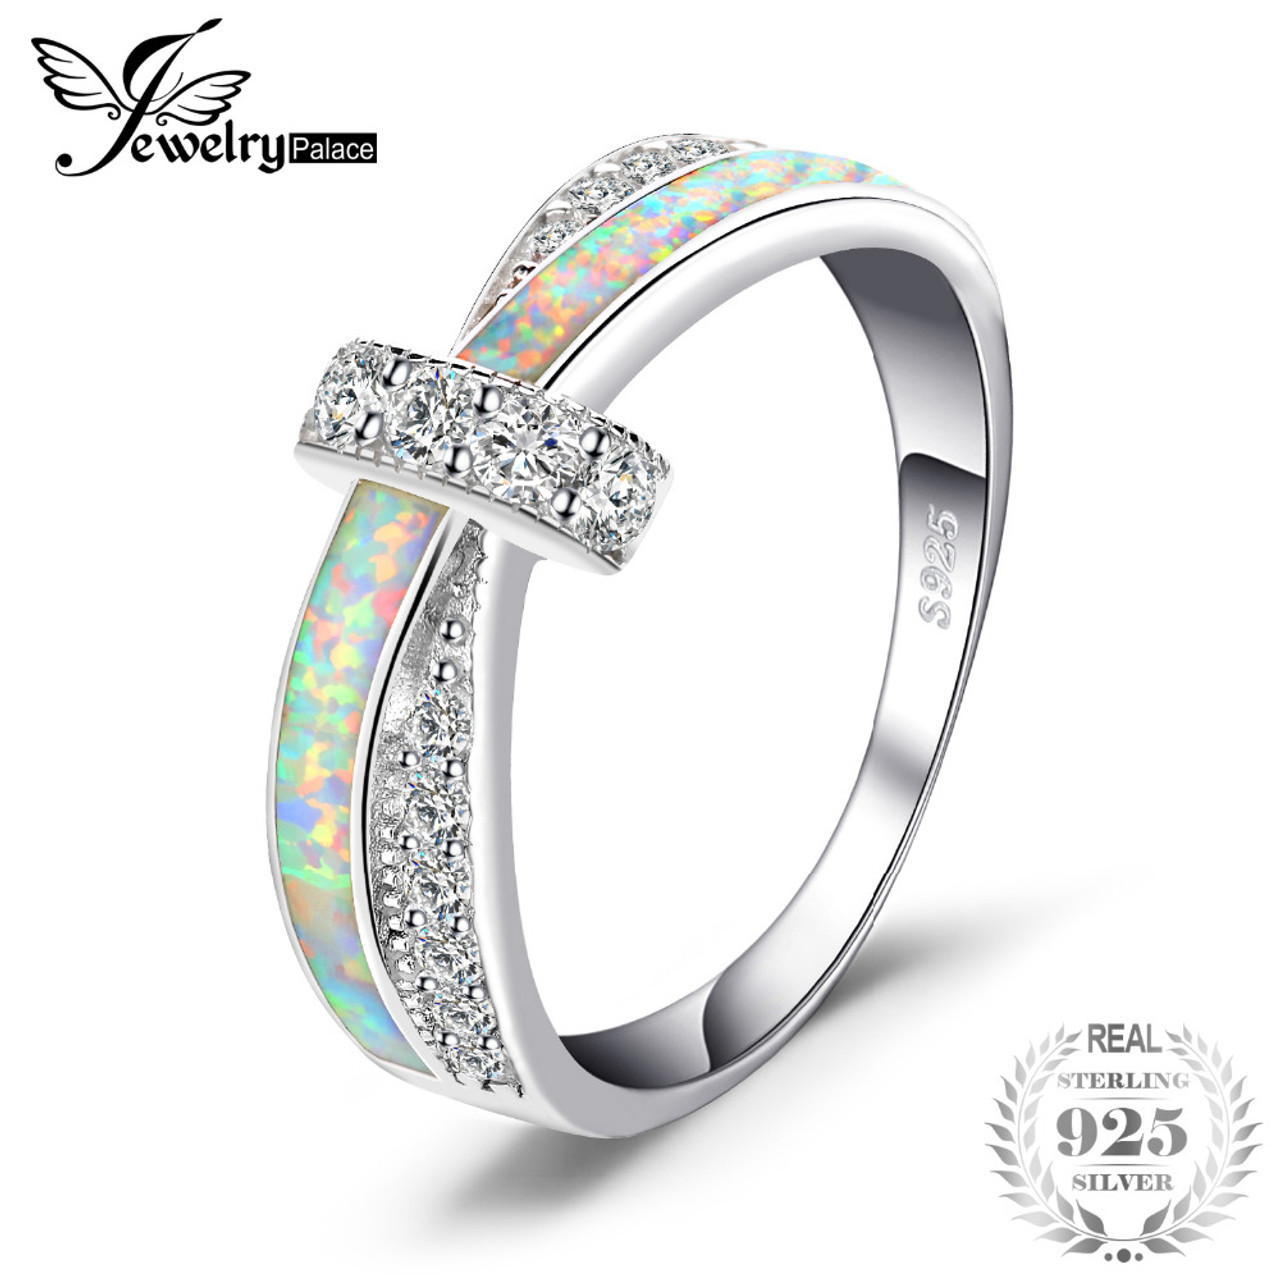 JewelryPalace Fashion Created Opal Crossover Band Ring 925 Sterling Silver Gift For Girlfriend Birthday Present Hot Selling